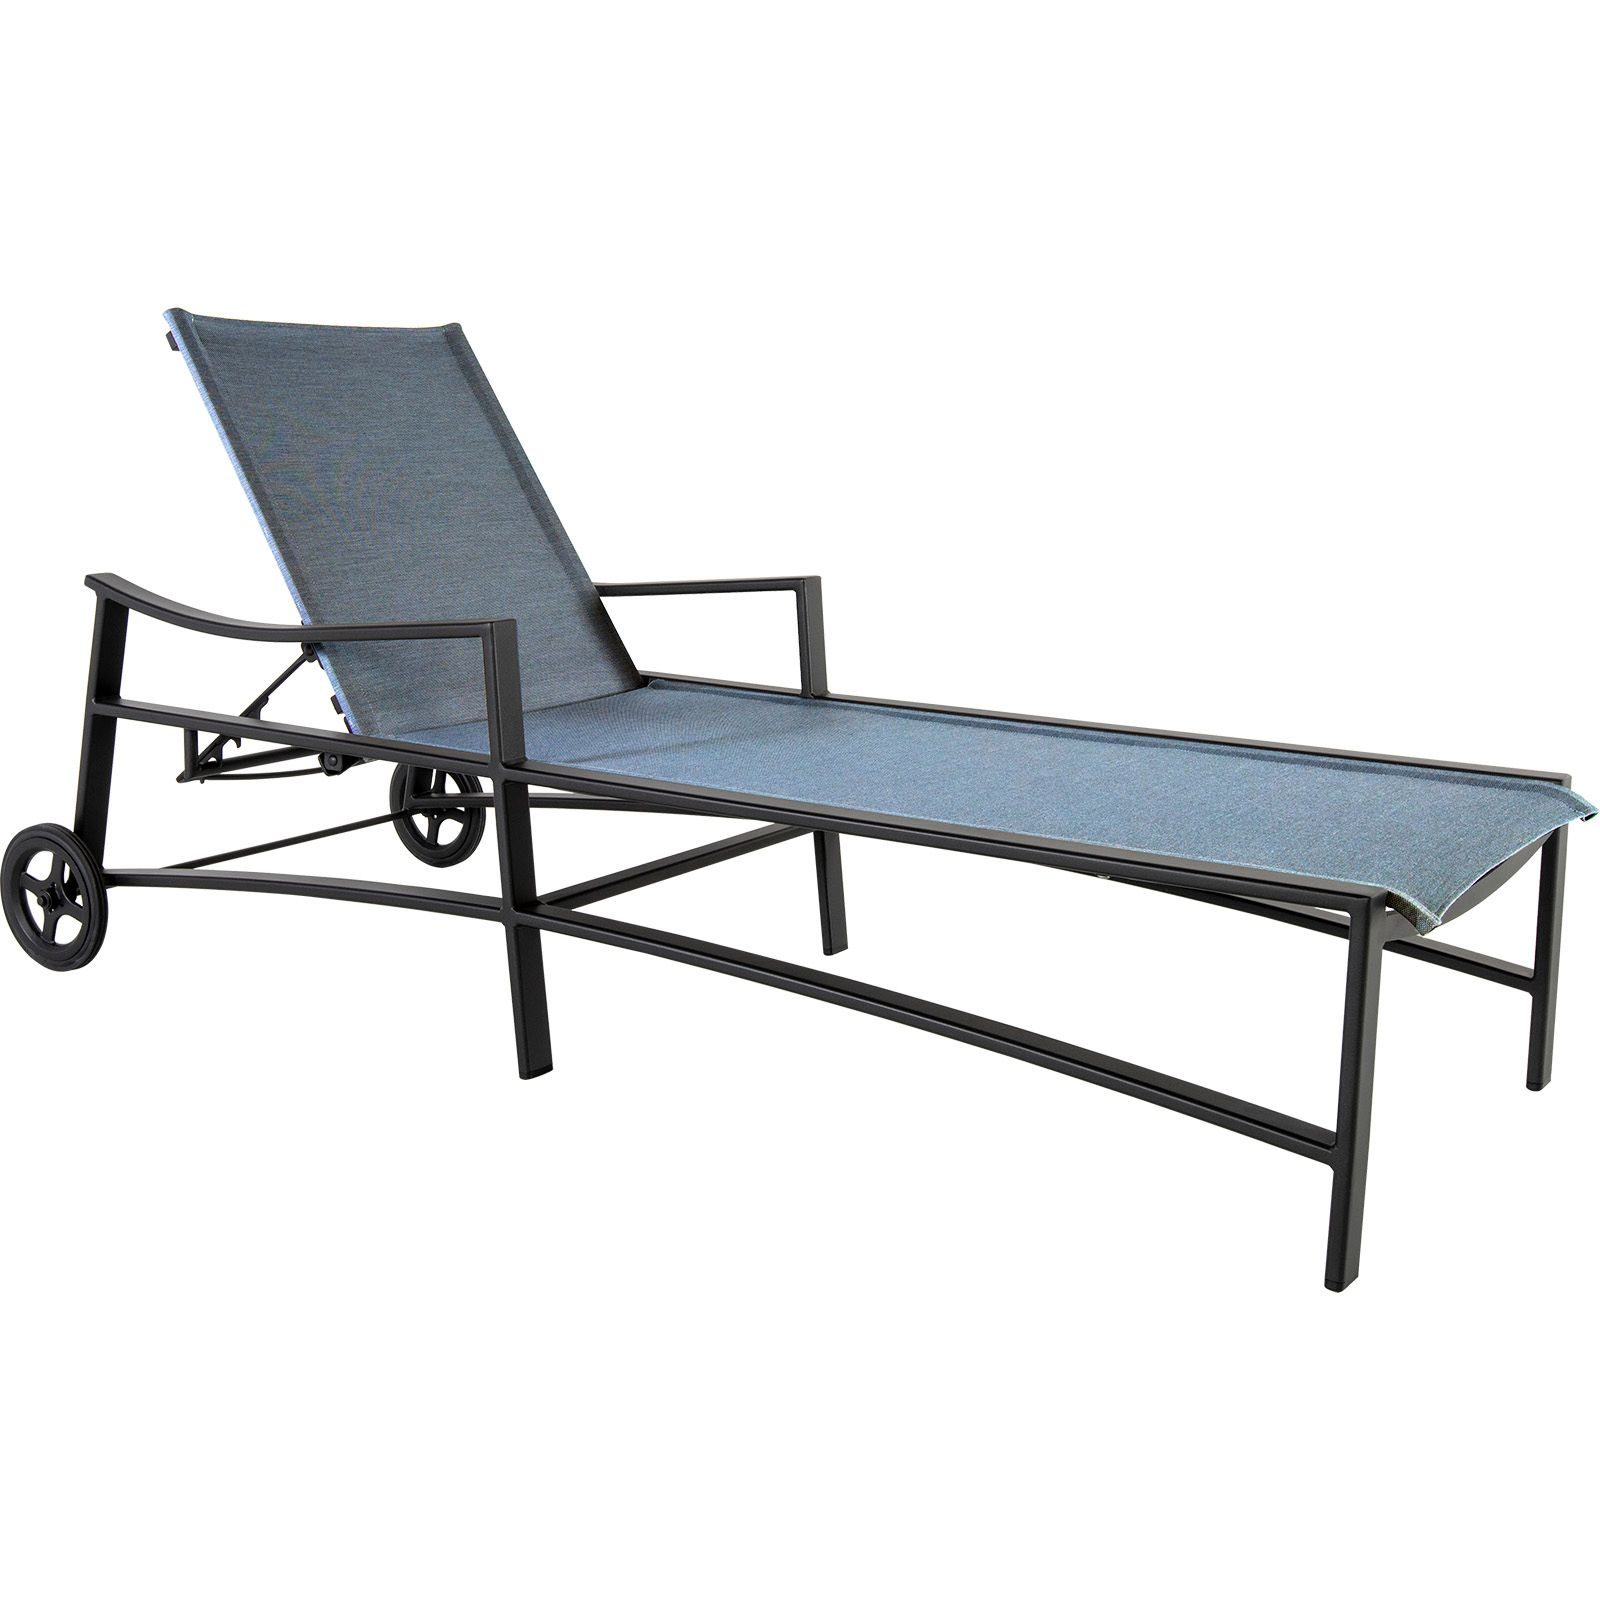 Avana Sling Adjustable Chaise with Wheels